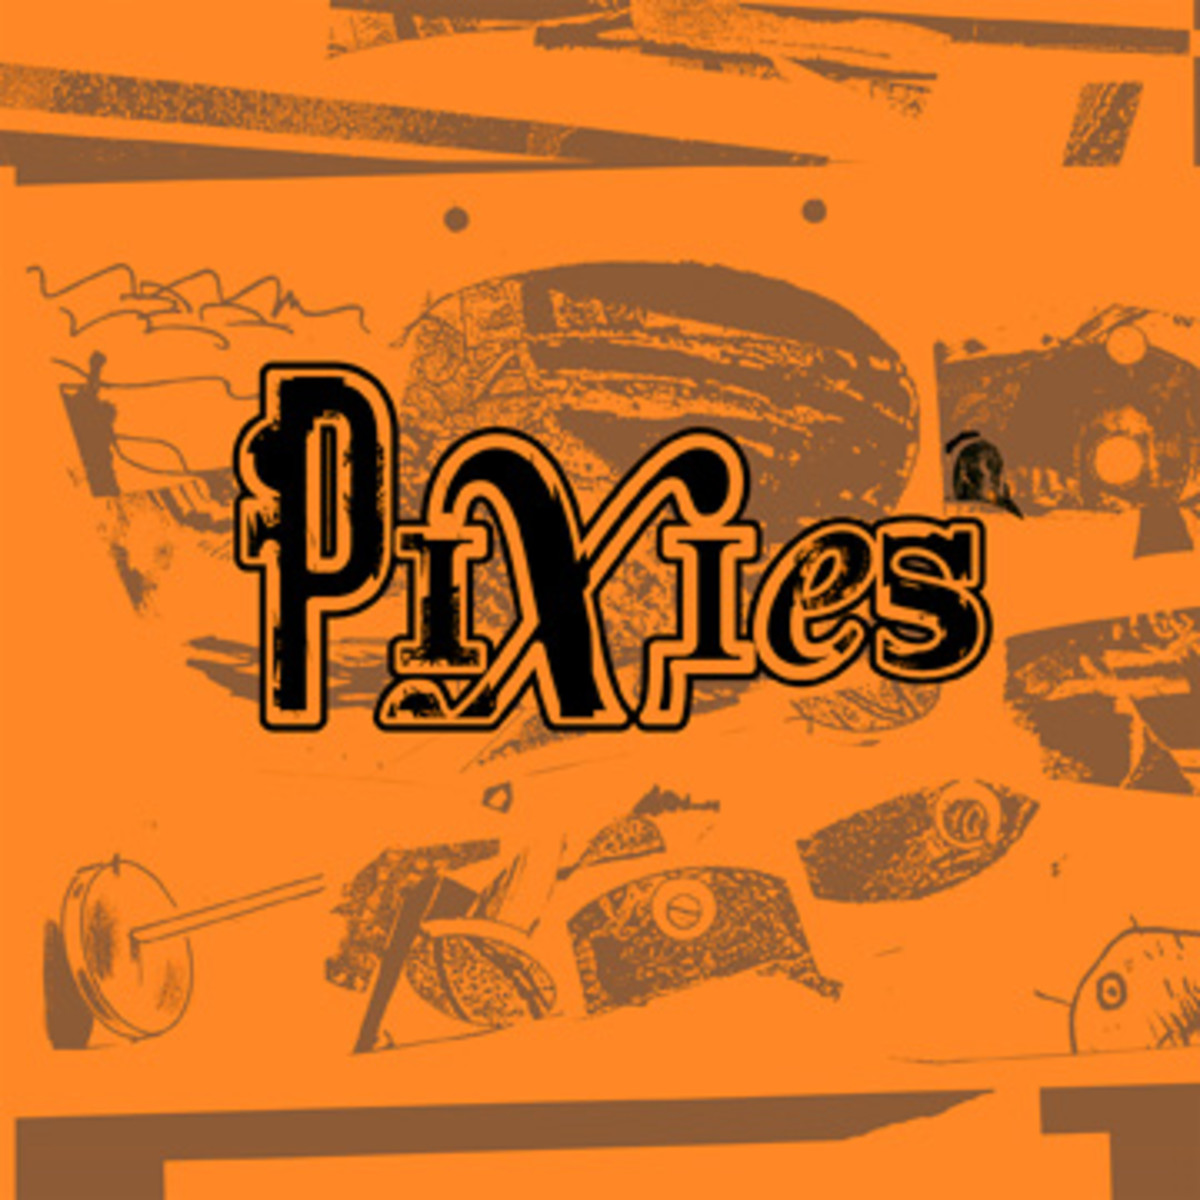 Indie Cindy, The Pixies' first album in 23 years, features all of the well-known elements of the band's sound and still sounds new and exciting.